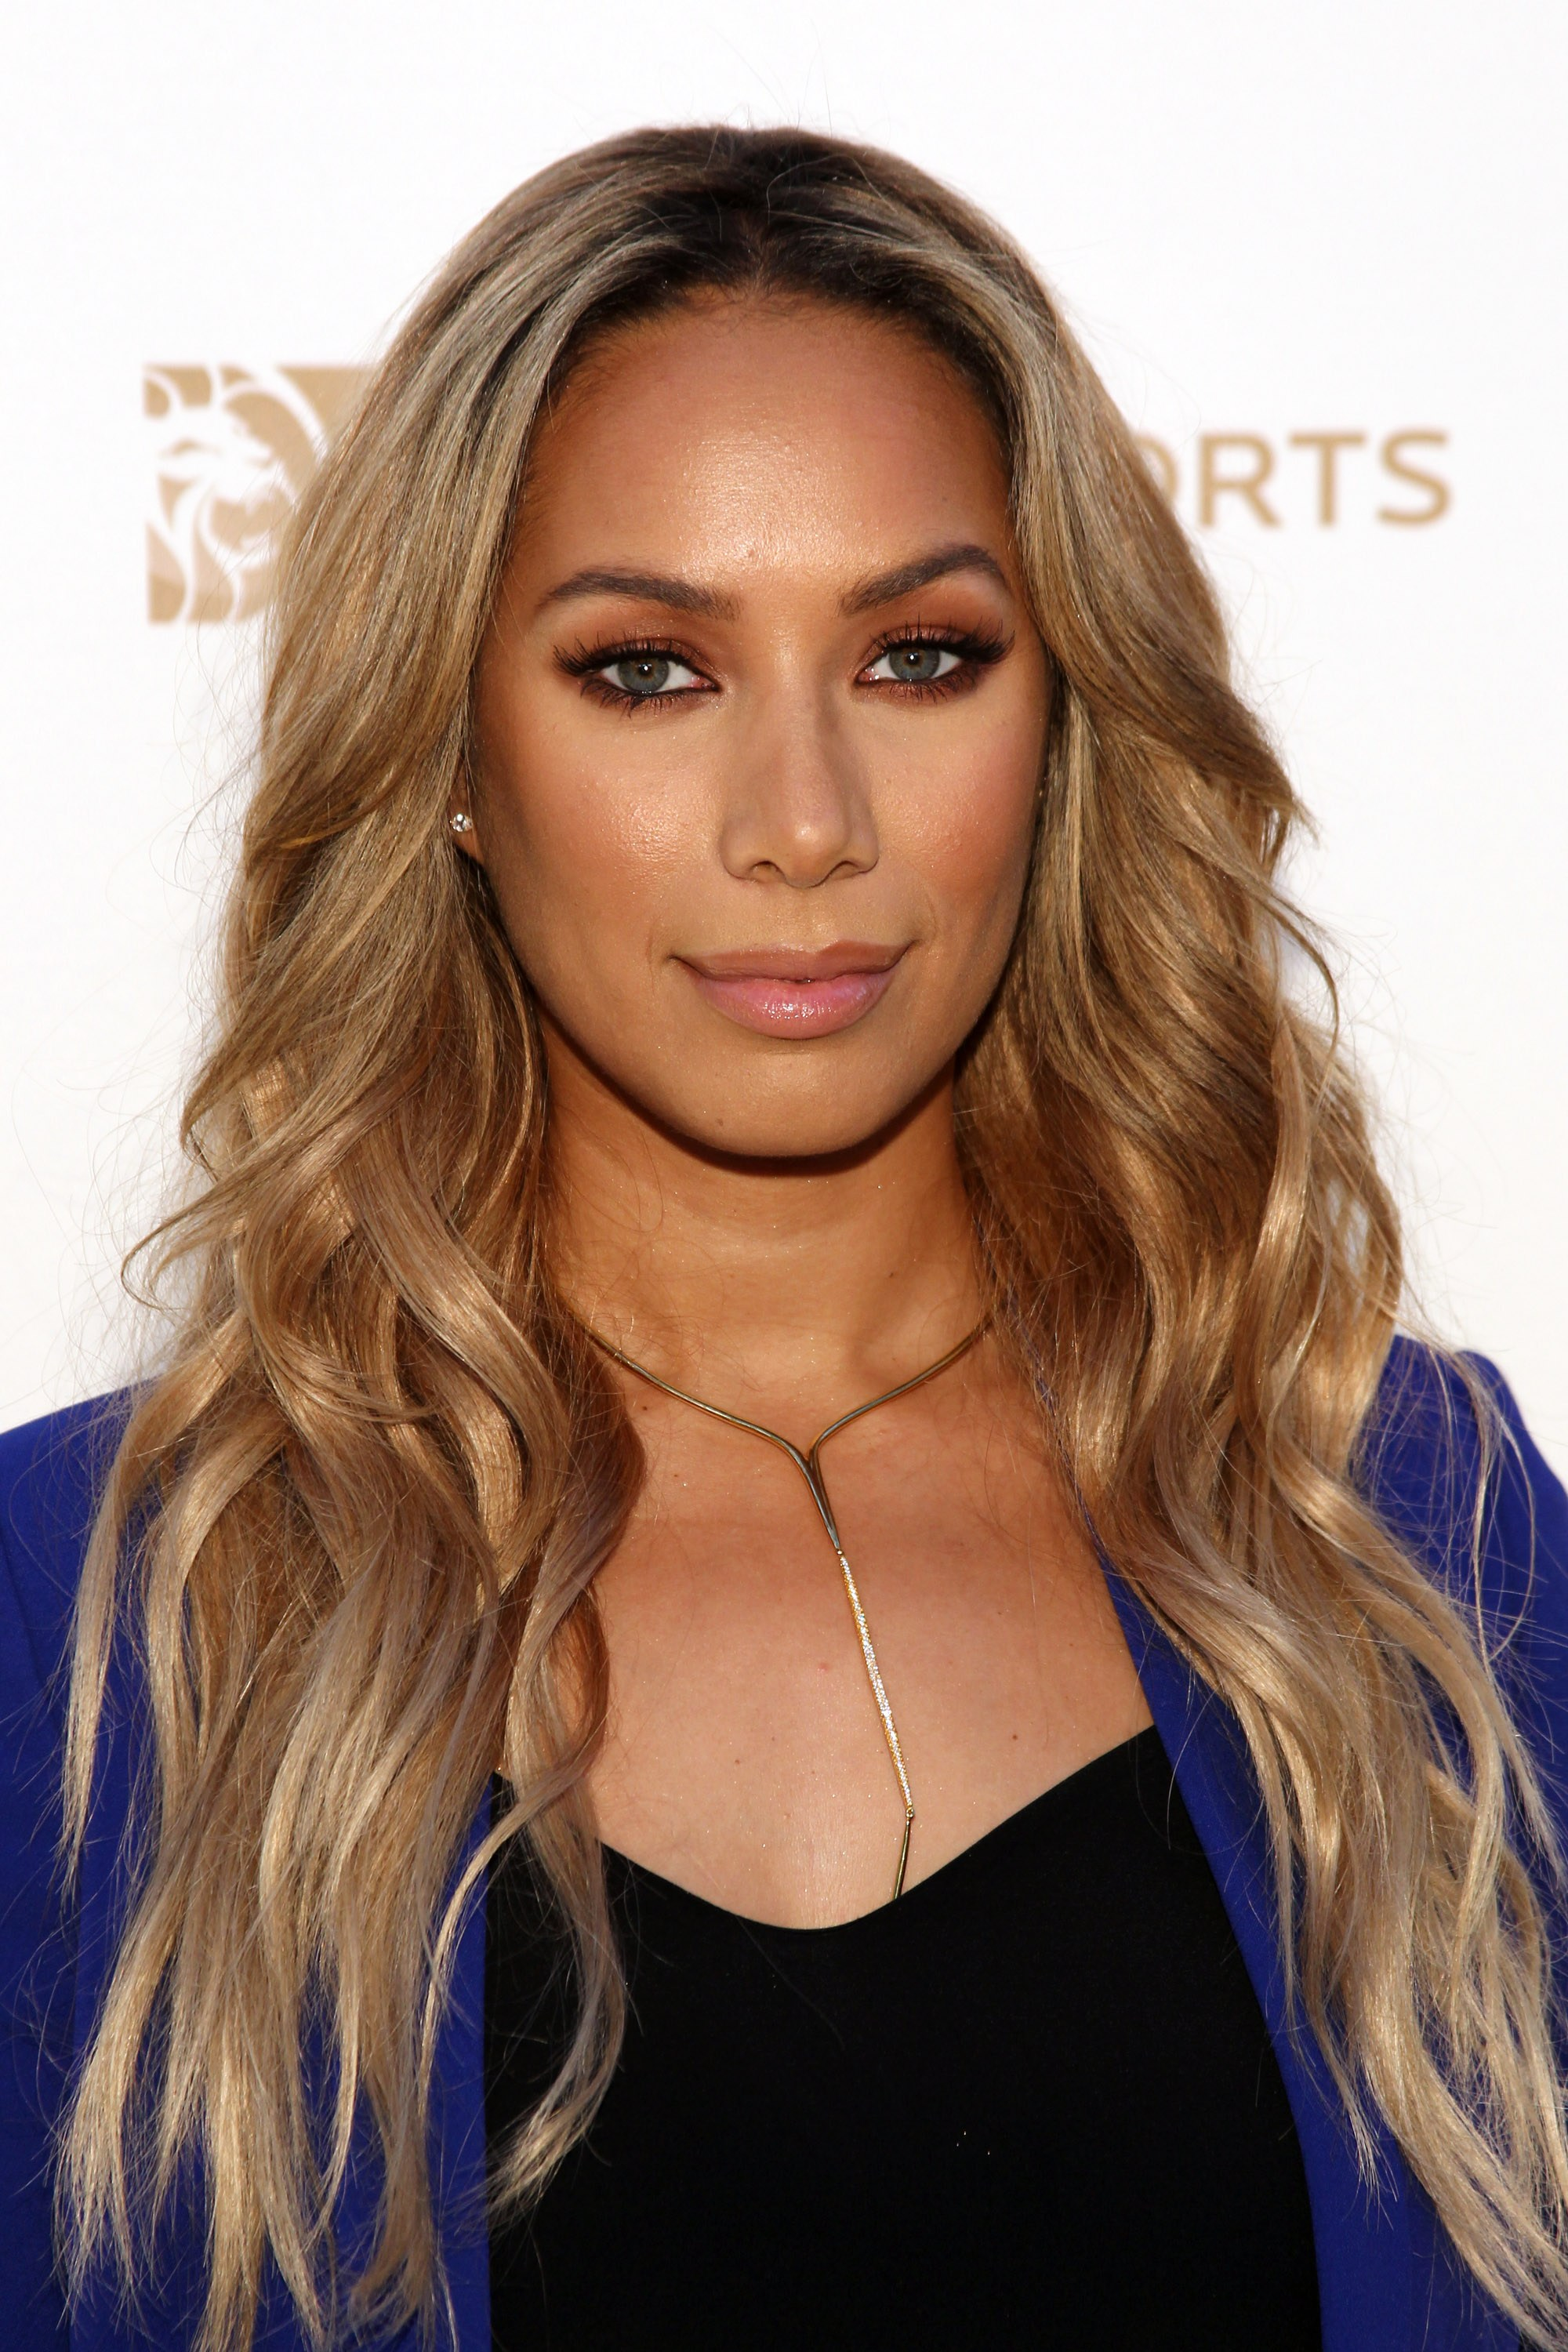 Mandatory Credit: Photo by Everett/REX/Shutterstock (5616942f) Leona Lewis Fourth Annual 'One Night for One Drop' Philanthropy Event, Las Vegas, America - 18 Mar 2016